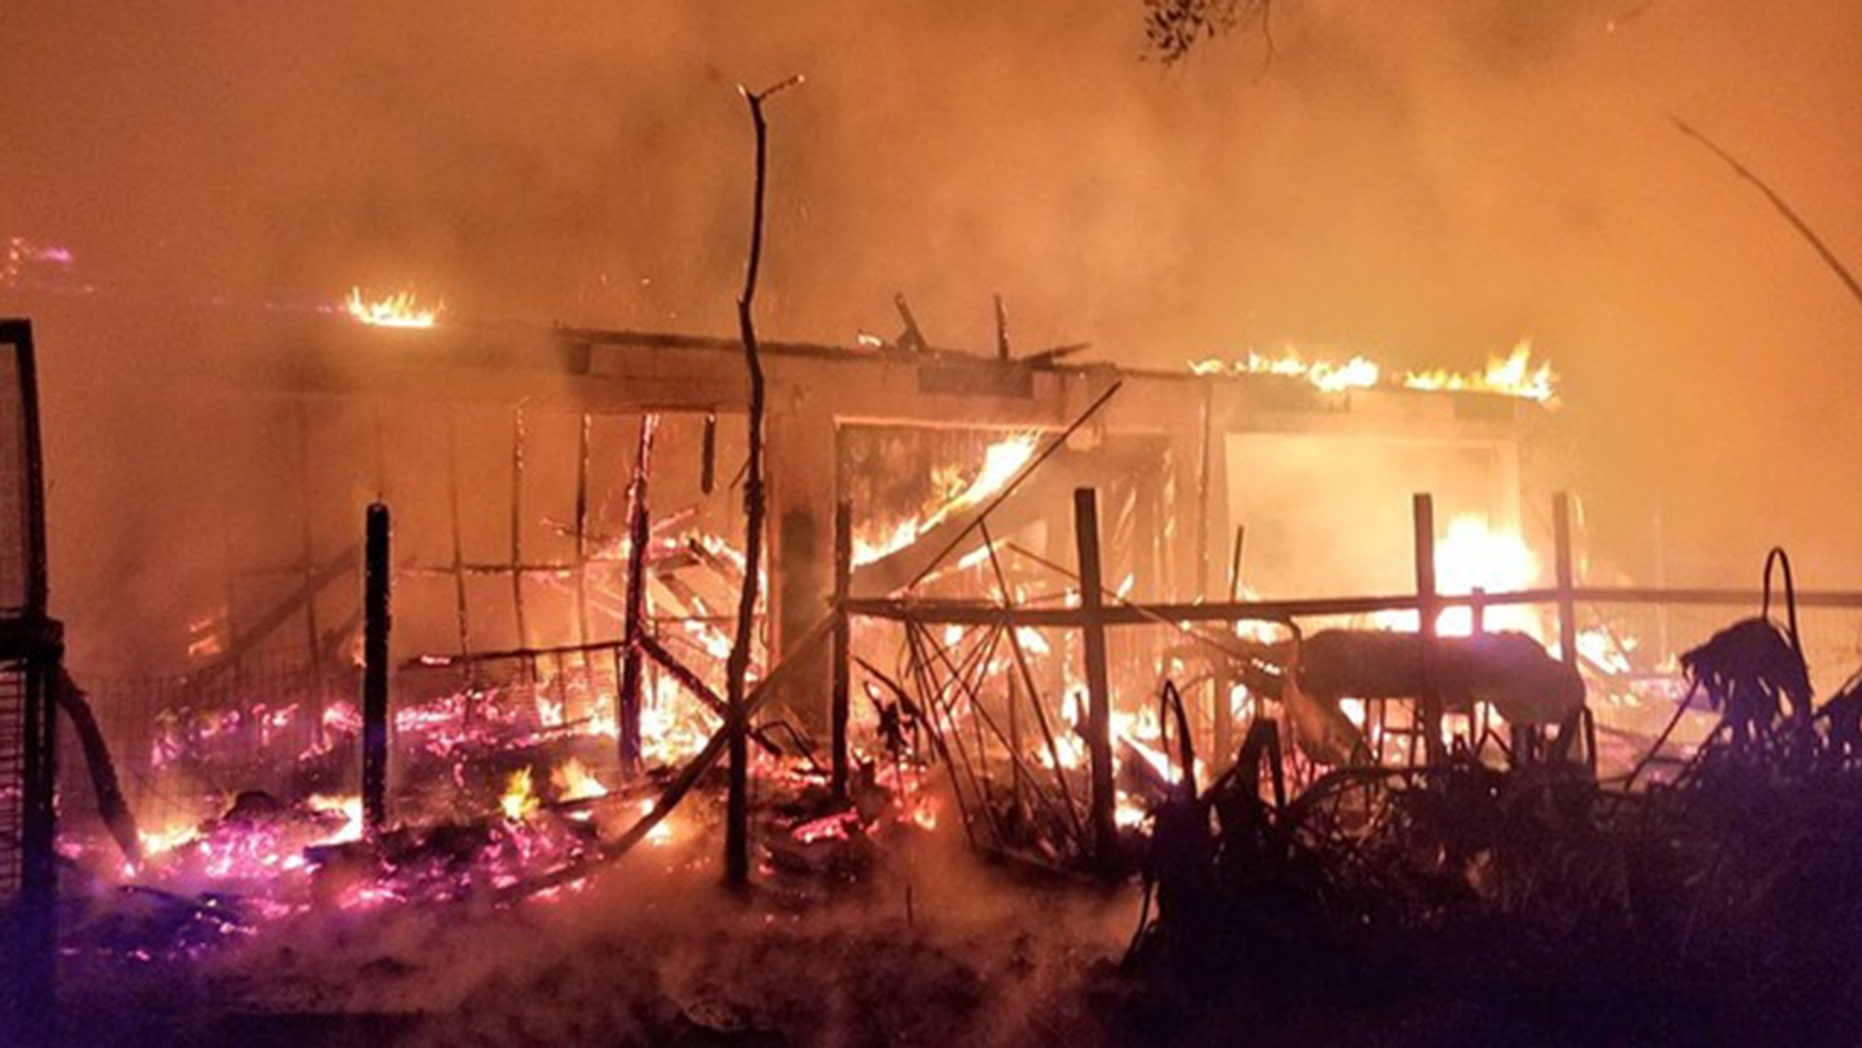 A fire at a wildlife sanctuary in Orange County, Fla., killed 33 animals and birds.